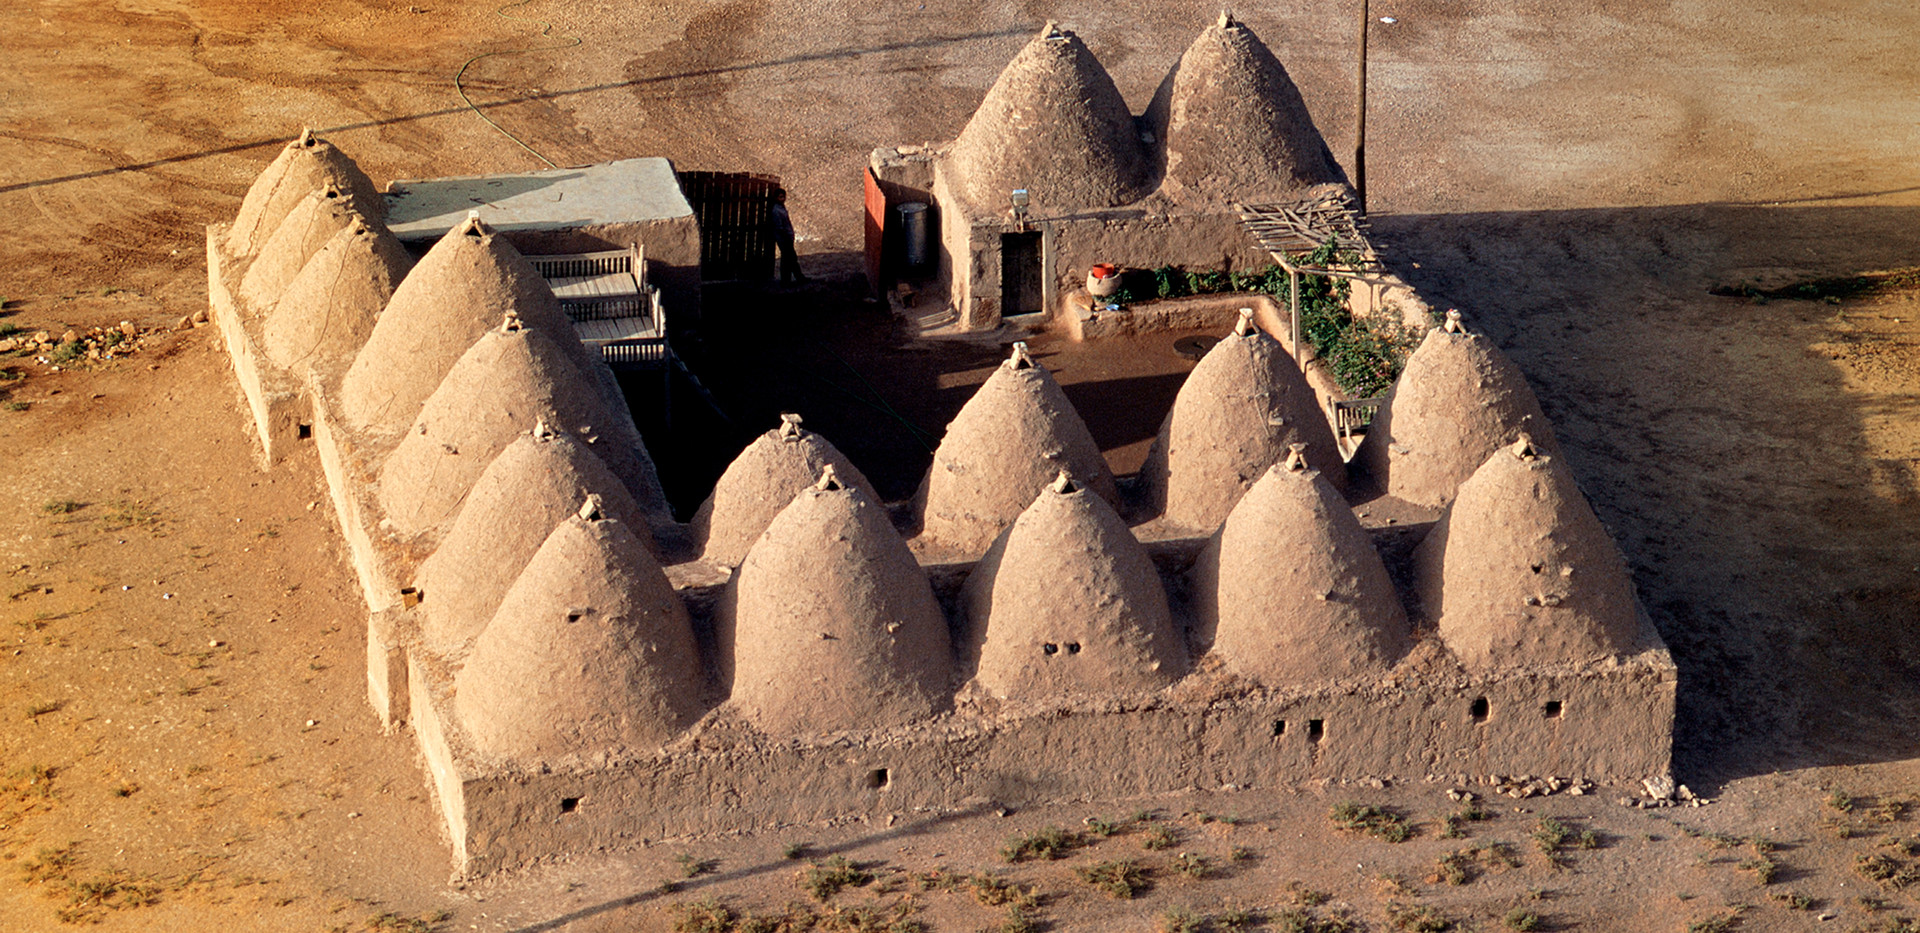 HARRAN HOUSES / URFA